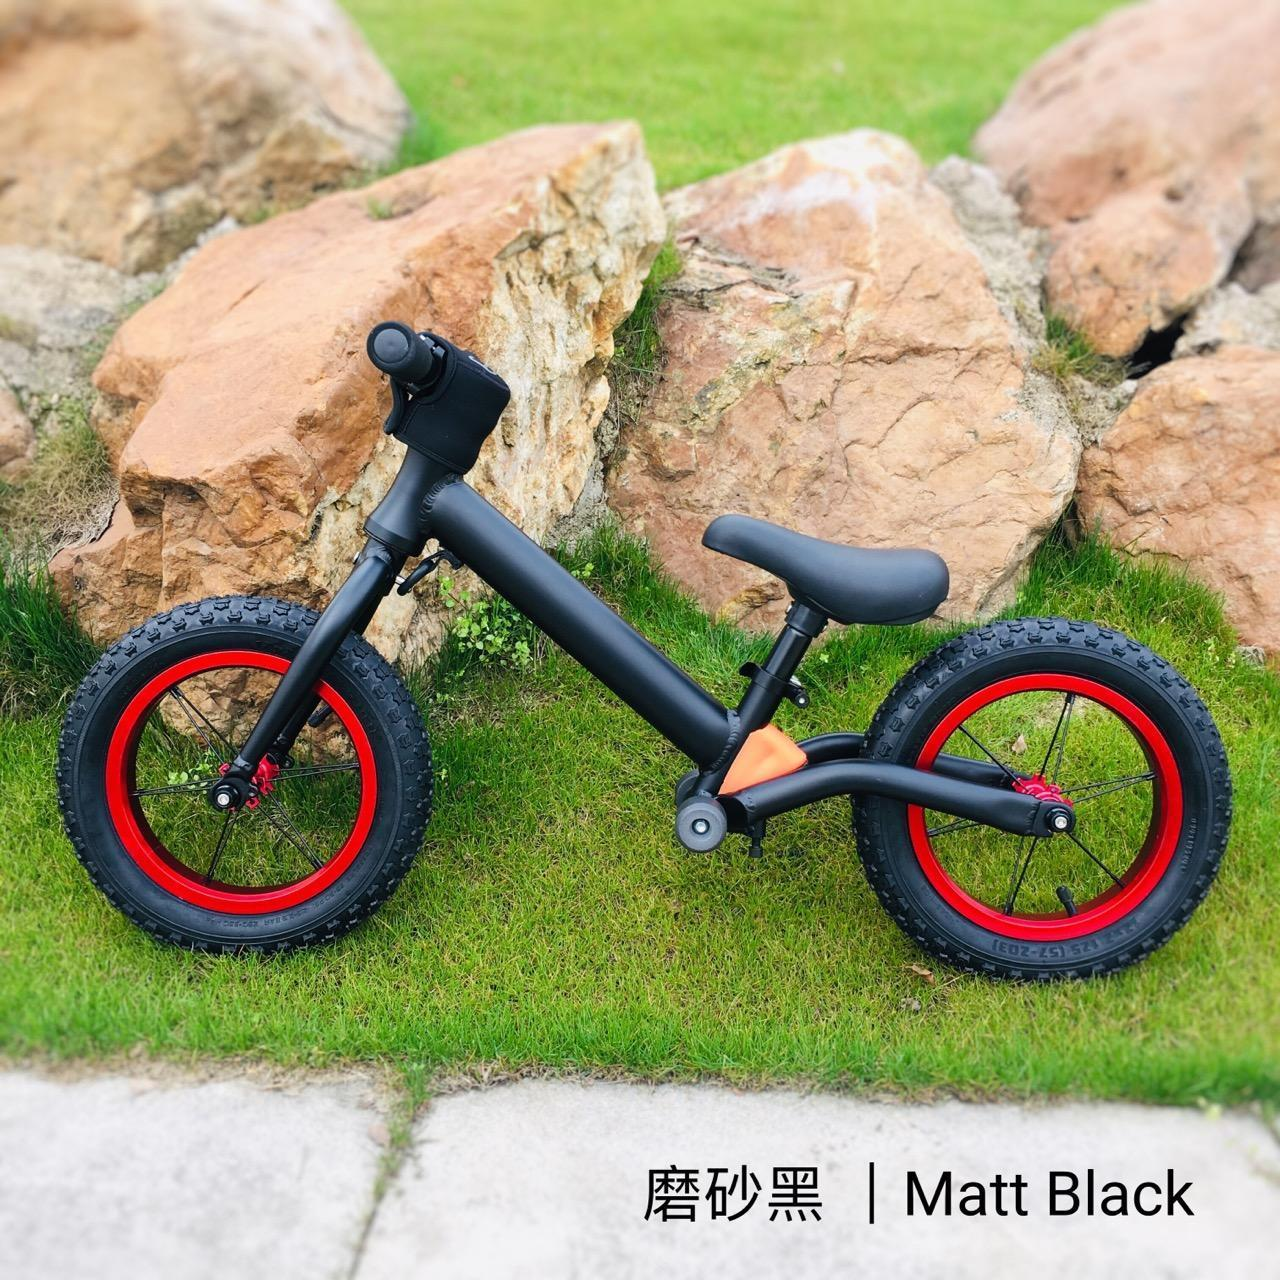 【A1208】12-inch Aluminum Alloy Kids' Balance Bike With Dampingl Manufactures